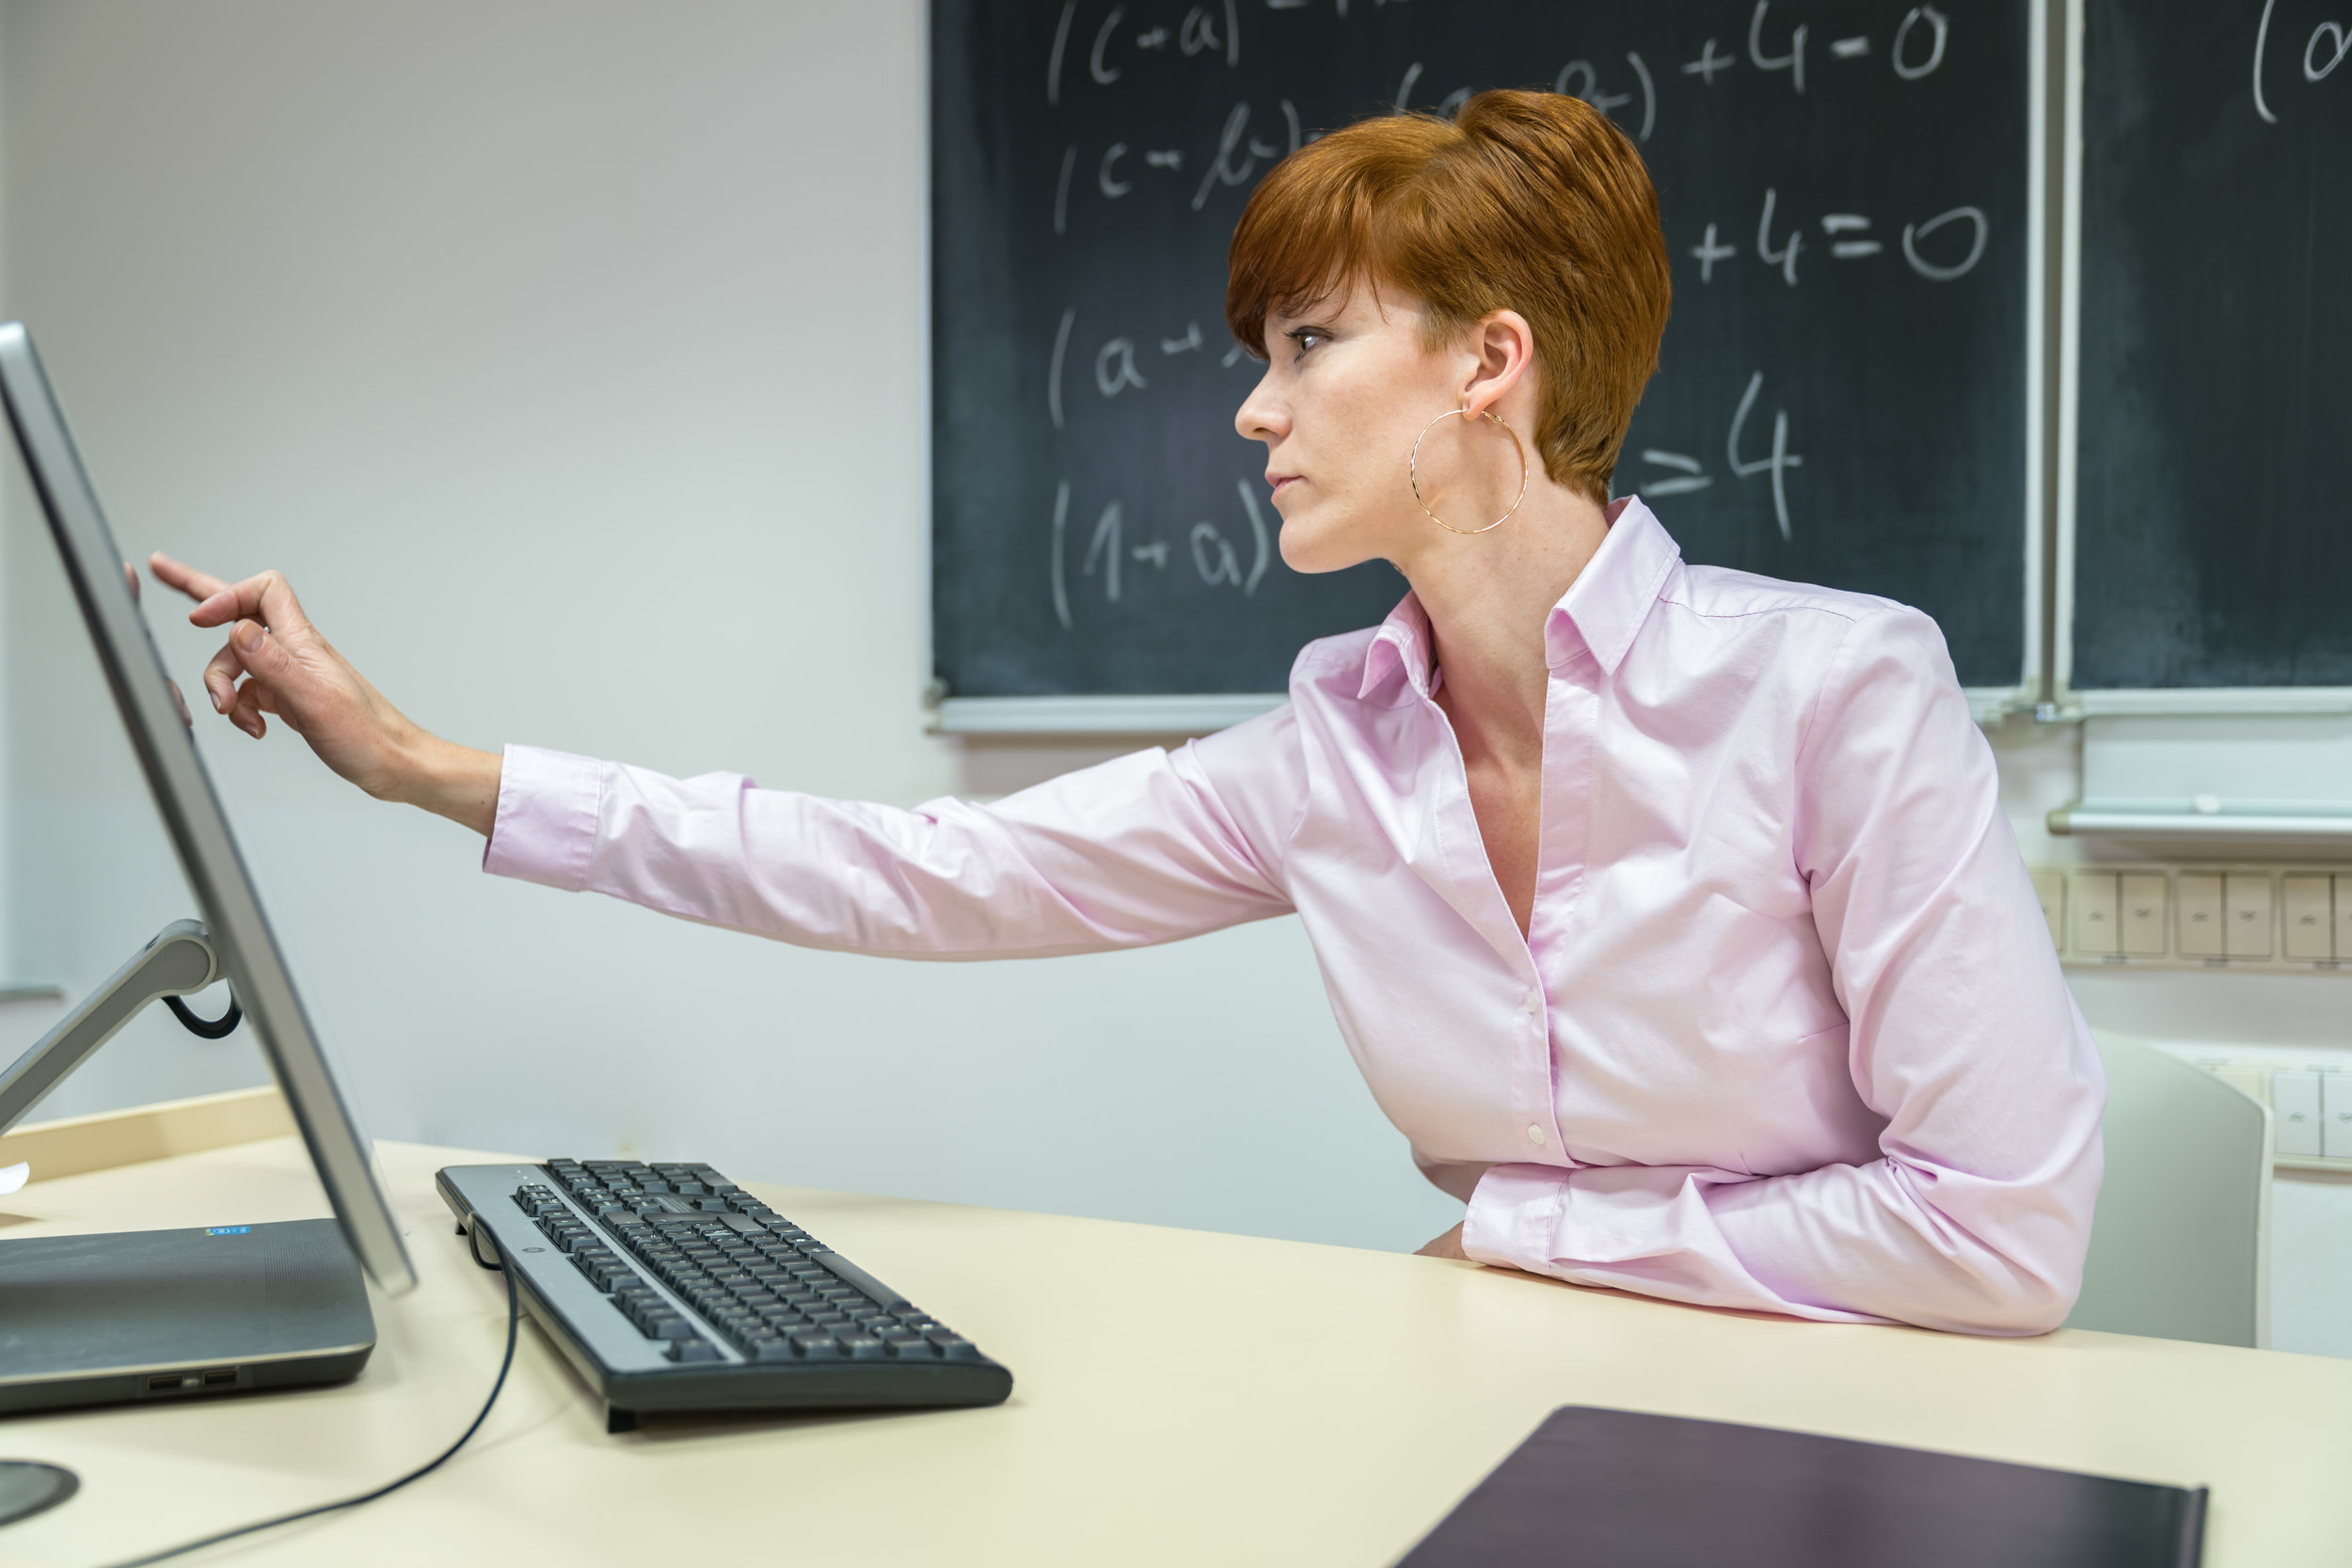 young woman prepares a teaching lesson in class on her computer